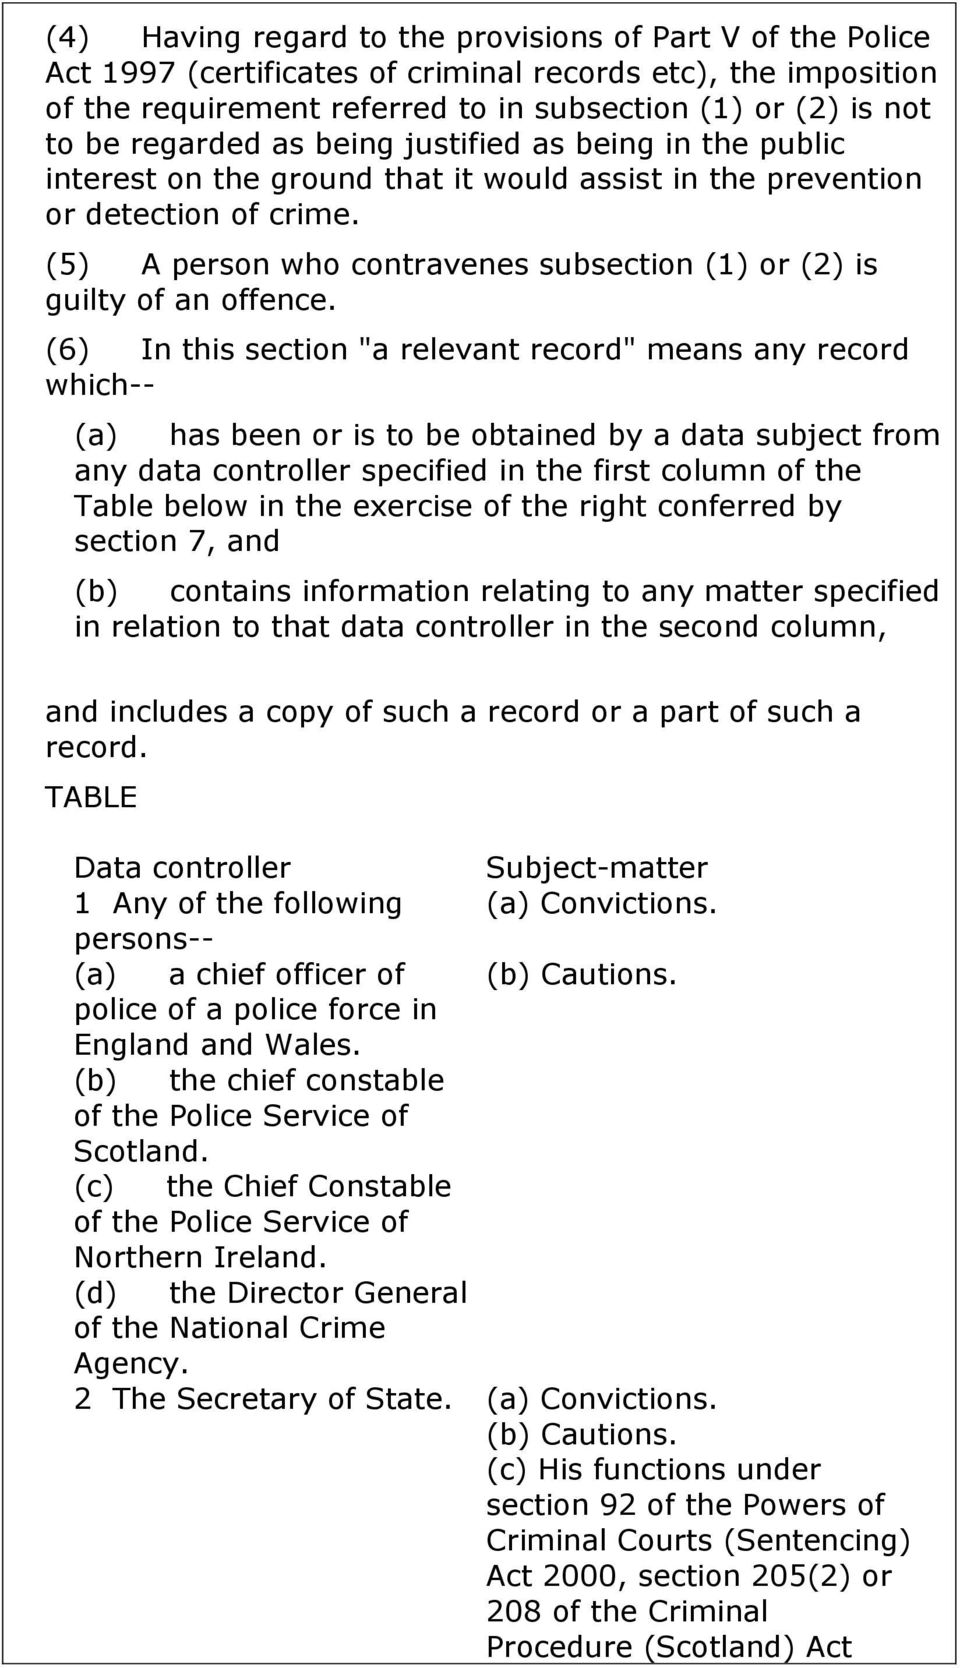 (5) A person who contravenes subsection (1) or (2) is guilty of an offence.